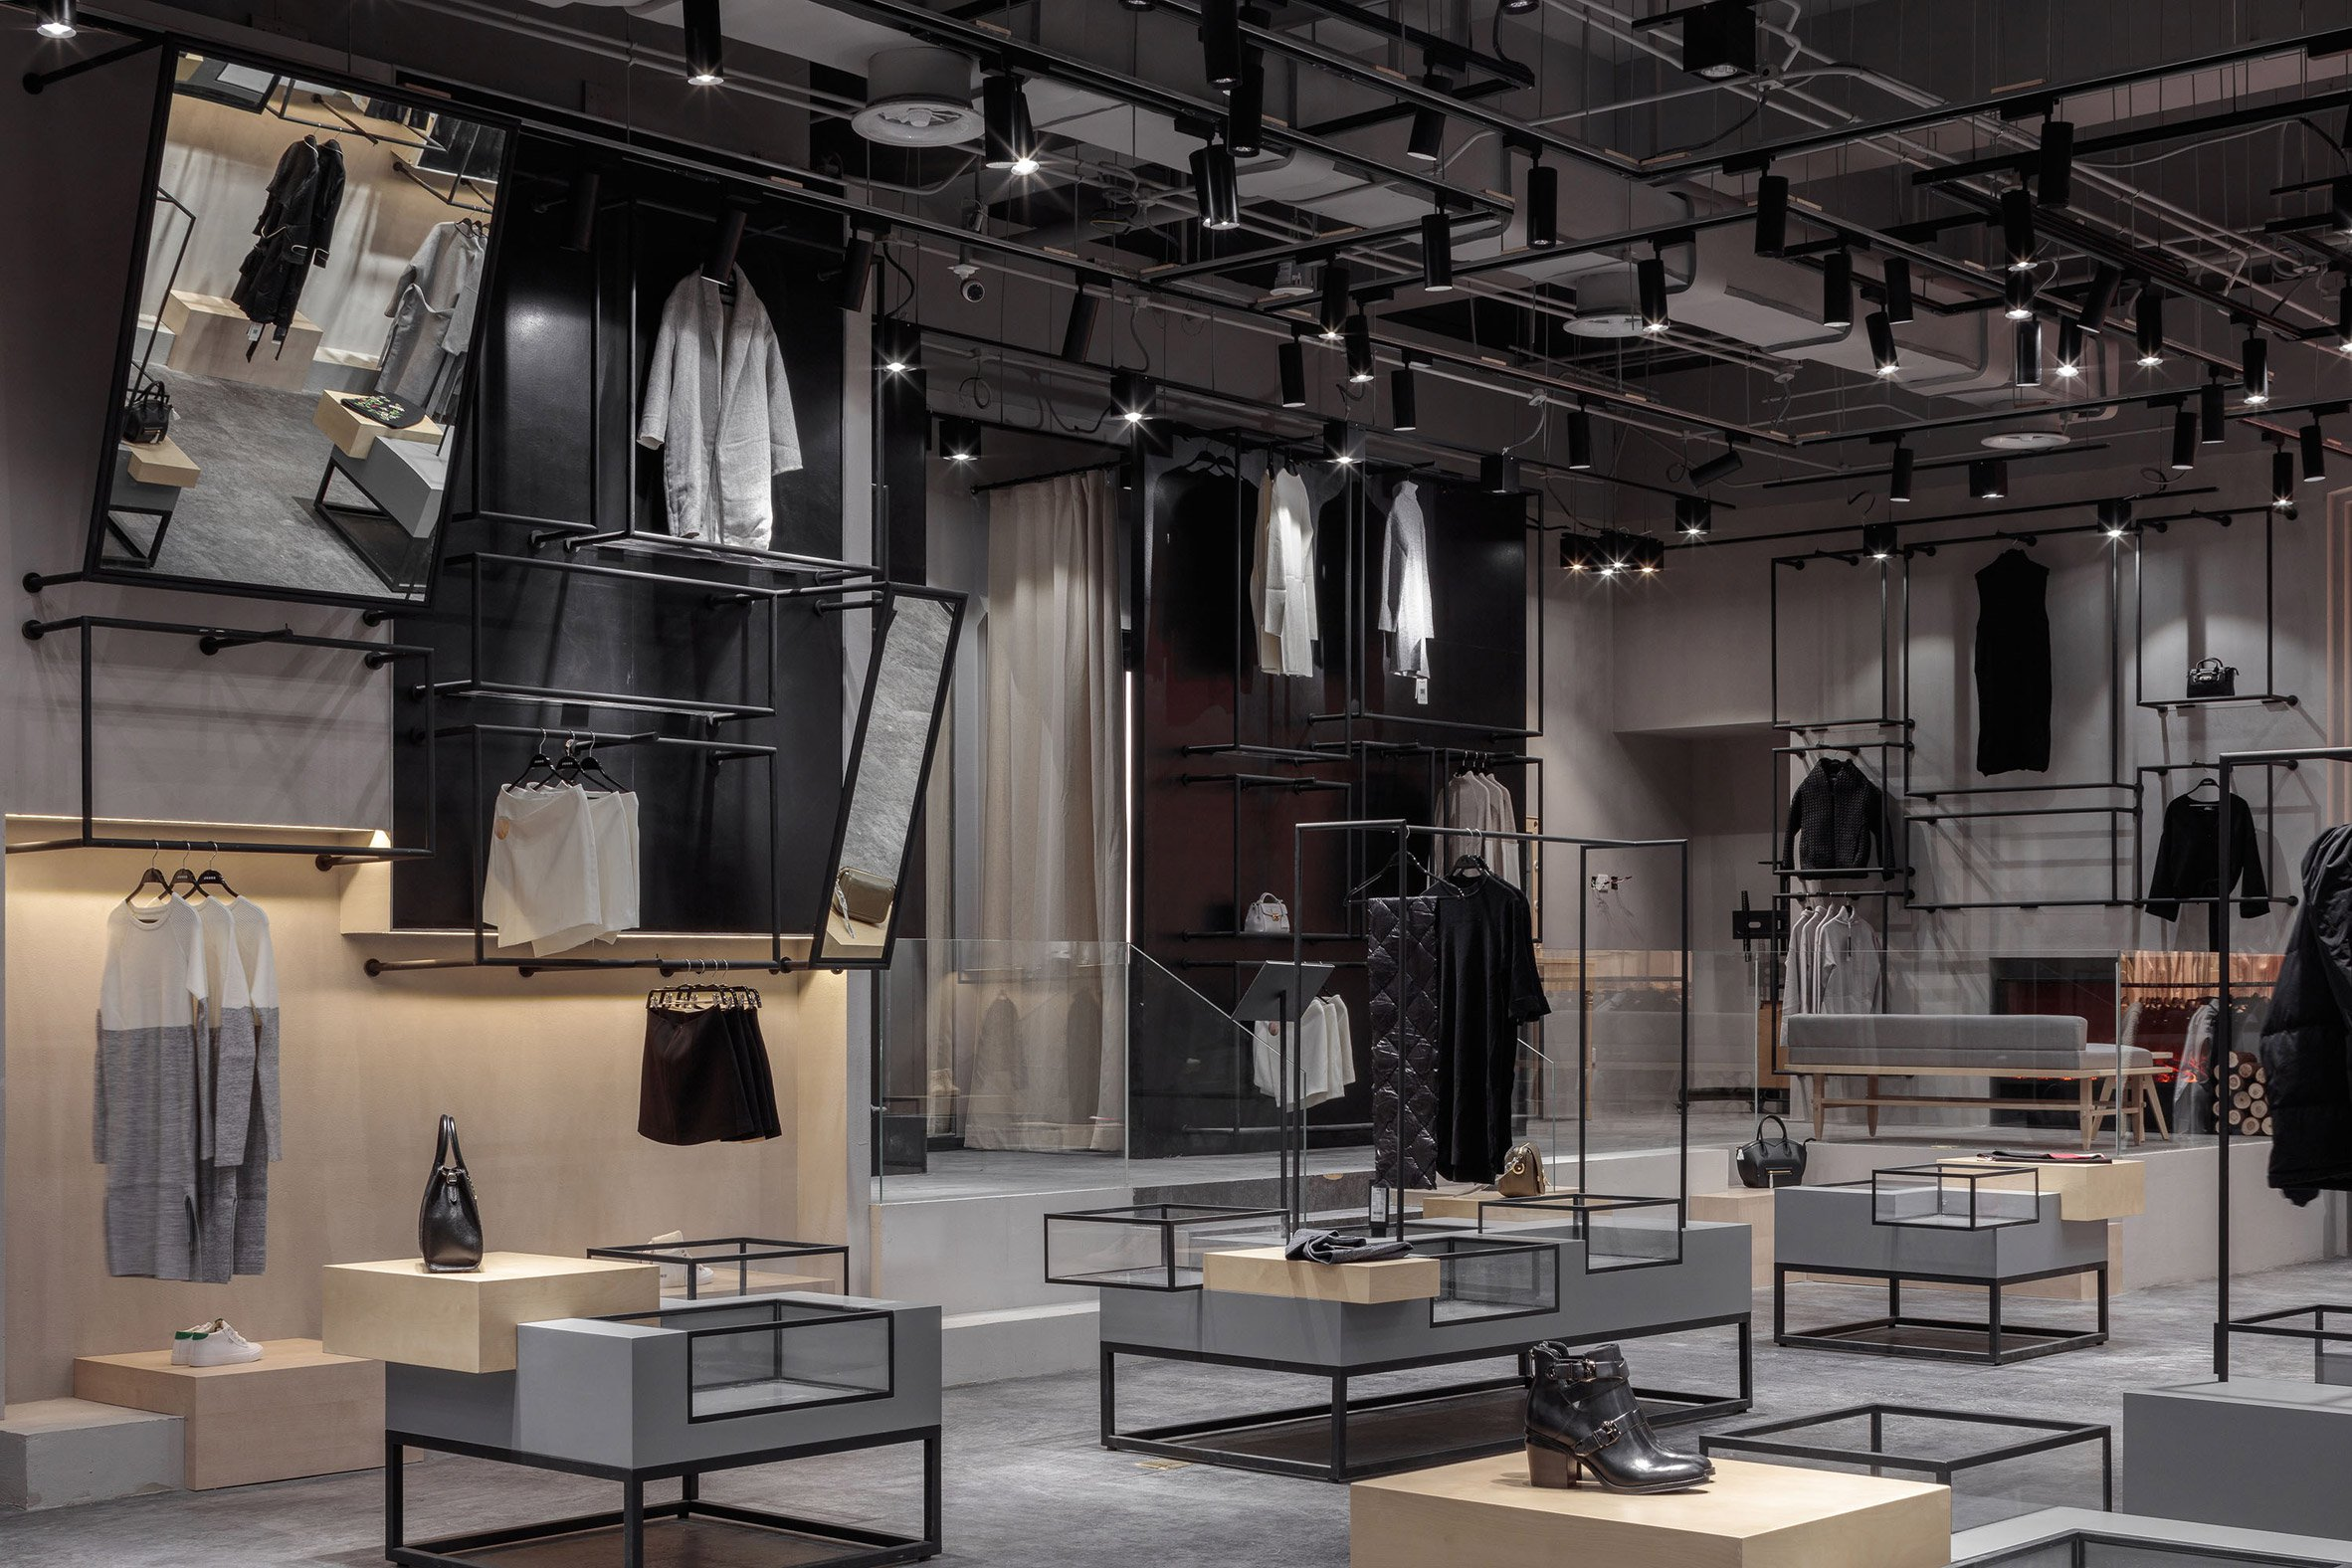 jooos-fitting-room-li-xiang-interiors-retail-china_dezeen_2364_col_30